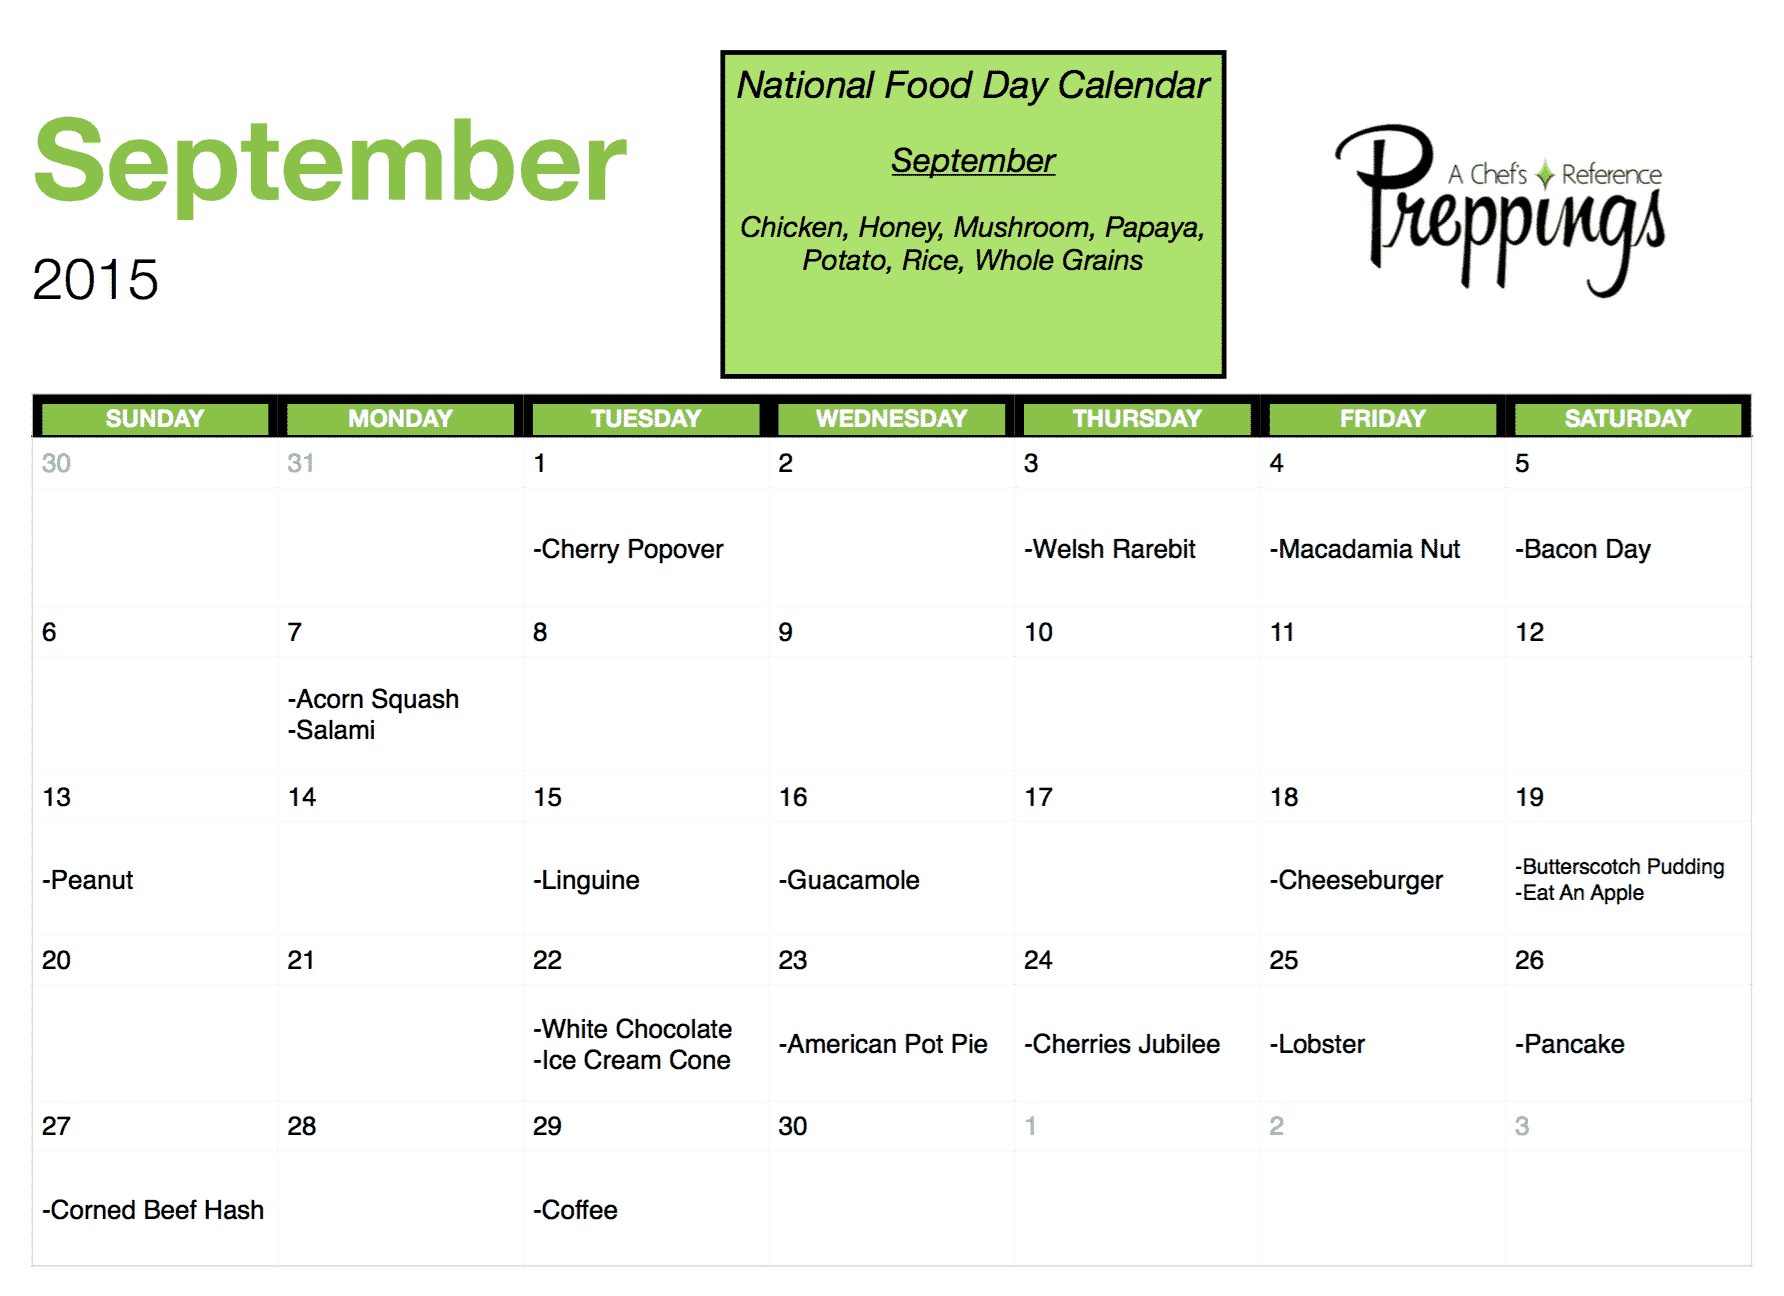 National Food Day Calendar National Food Days  September 2015   Preppings